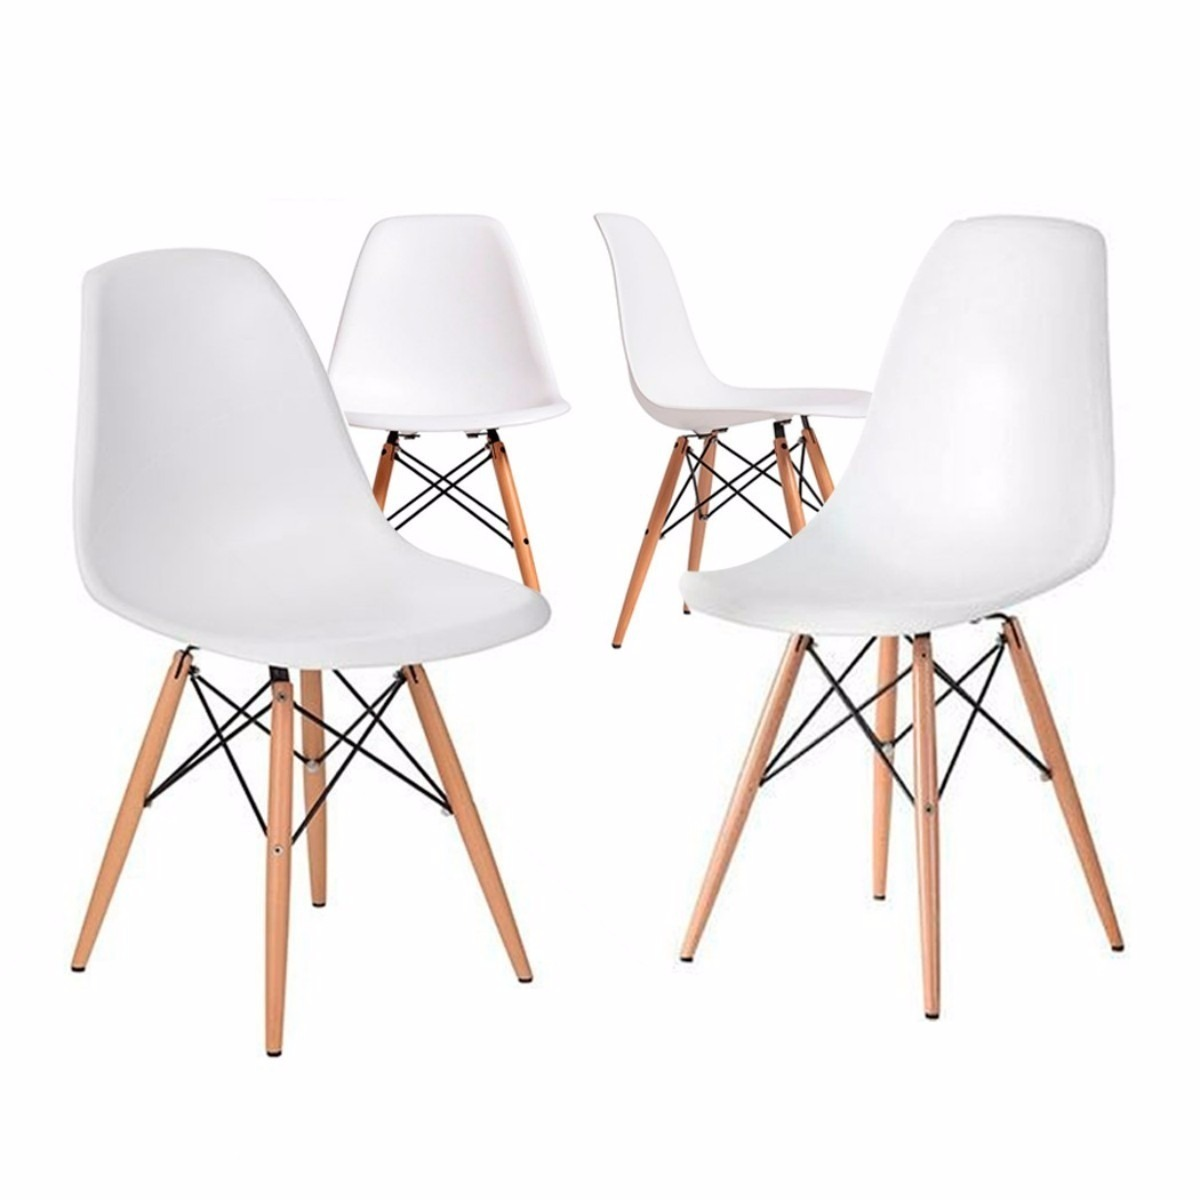 Pack 4 sillas eames dsw color blanco comedor bar negocio en mercado libre - Sillas plegables blancas ...